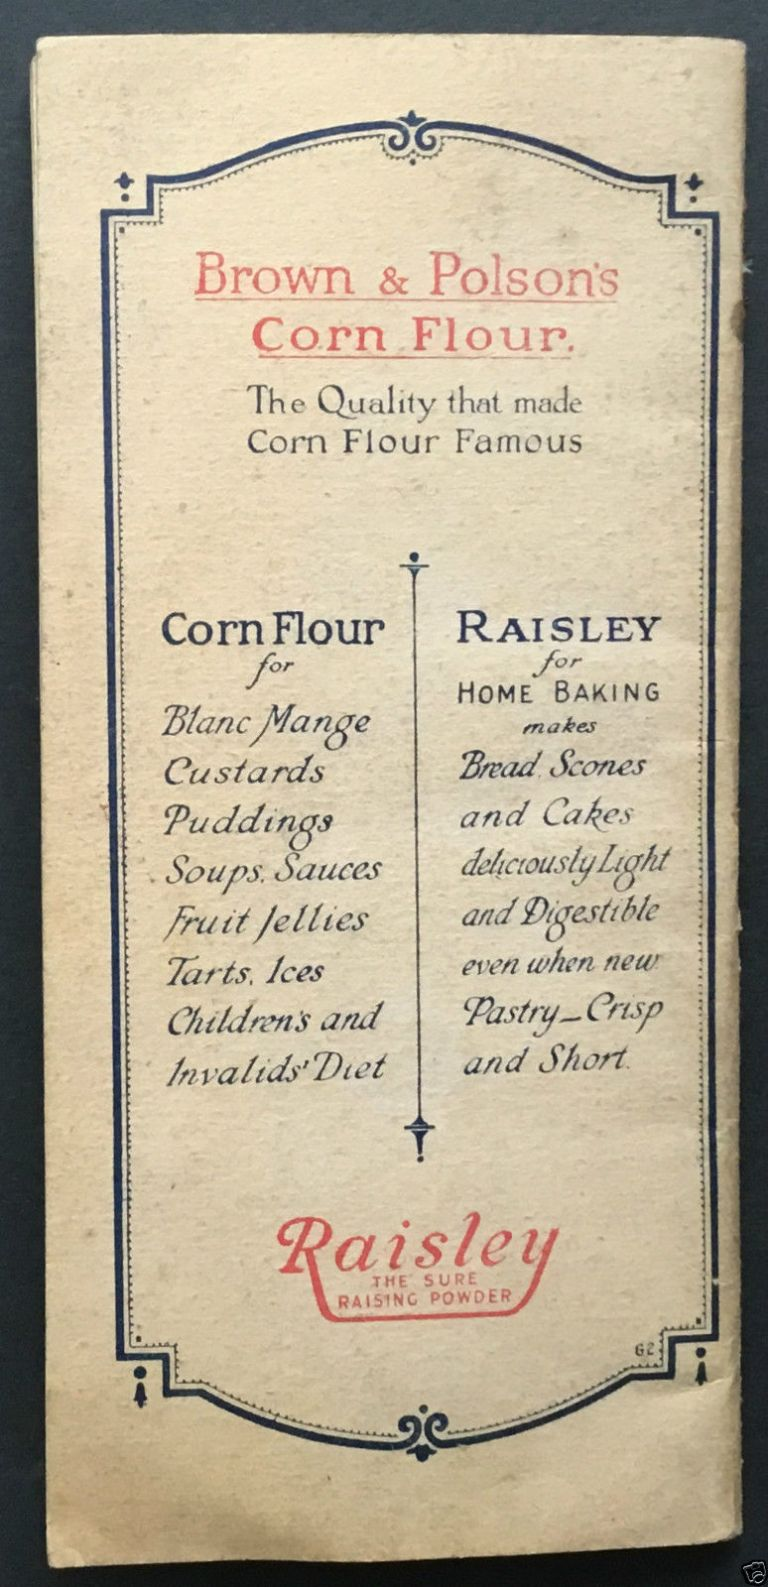 light-fare-recipes-for-corn-flour-and-raisley-_57-2